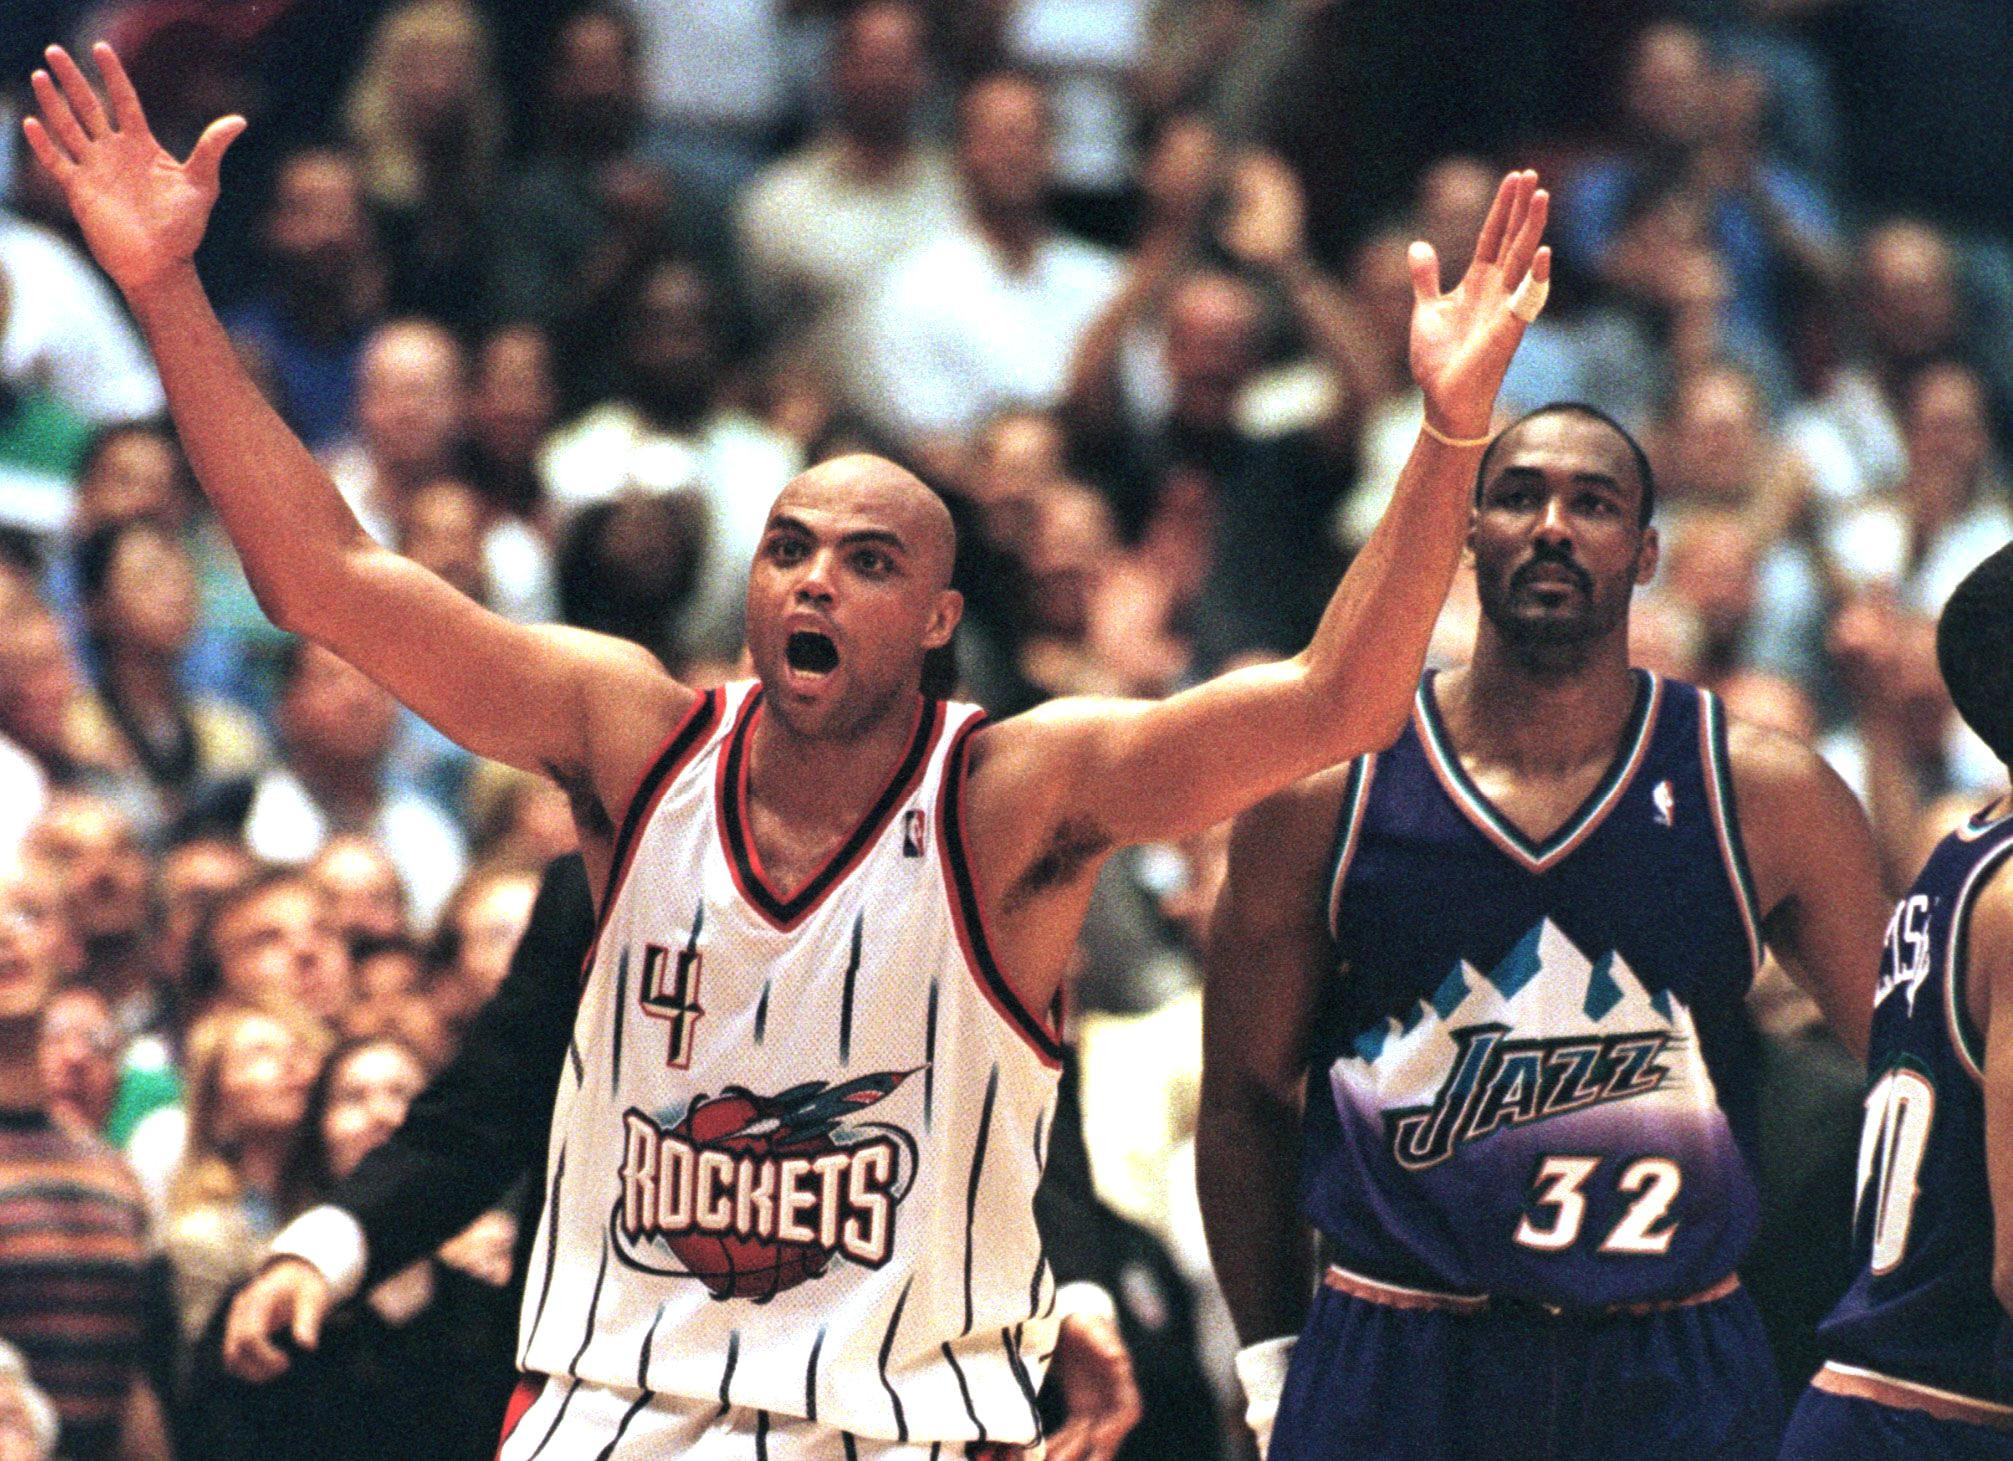 Charles Barkley enjoyed a stellar career where he was an 11-time NBA All-Star and a double Olympic gold medallist ©Getty Images